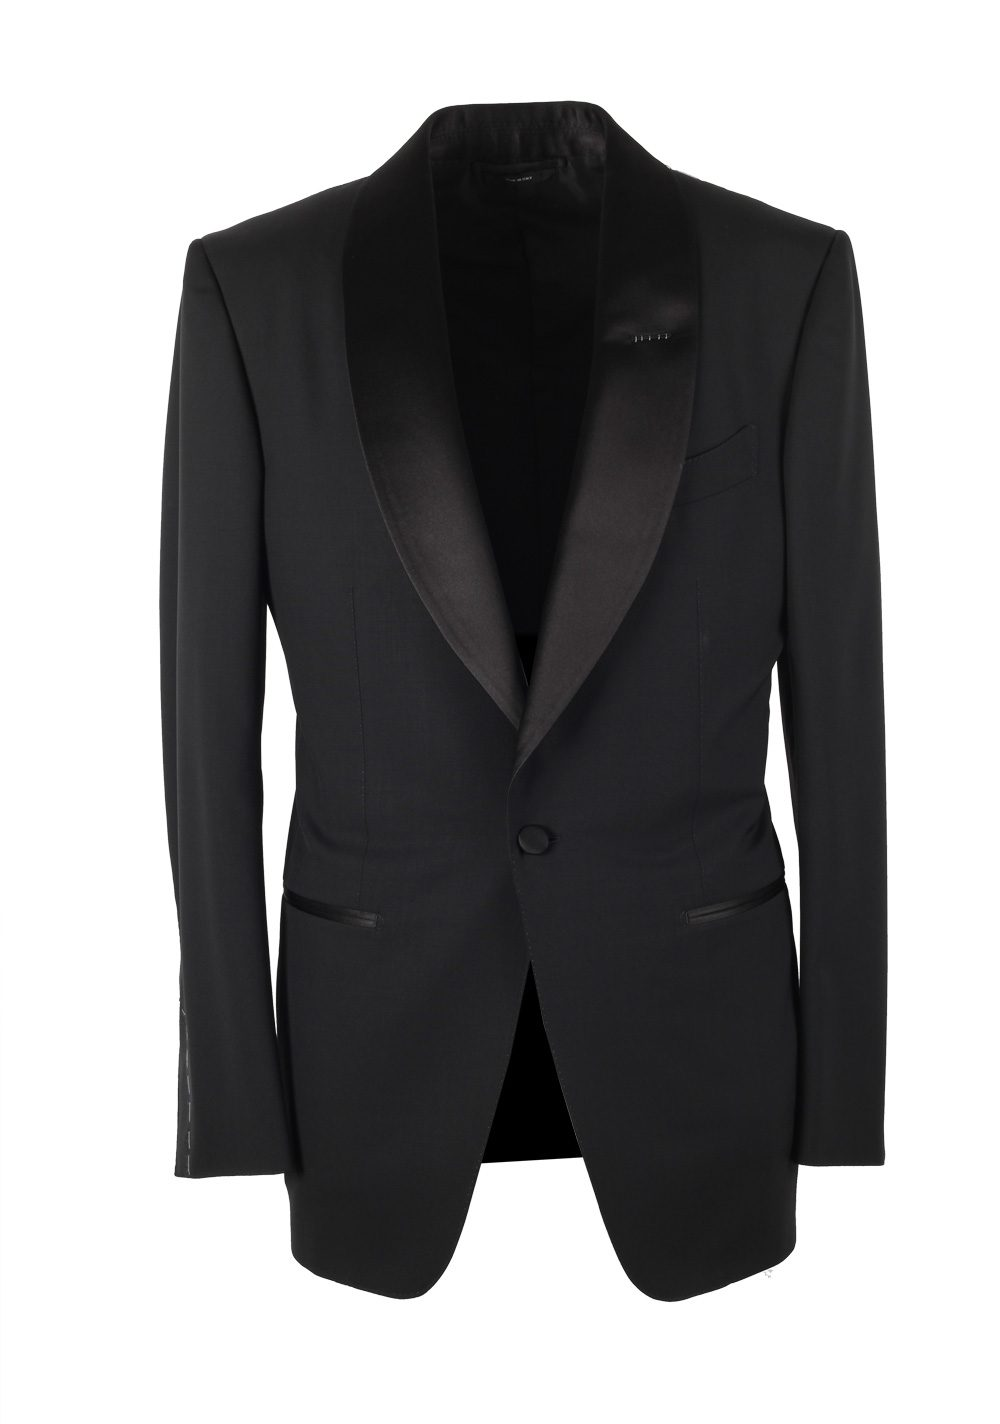 TOM FORD Windsor Black Tuxedo Smoking Suit Size 50 / 40R U.S. Fit A | Costume Limité